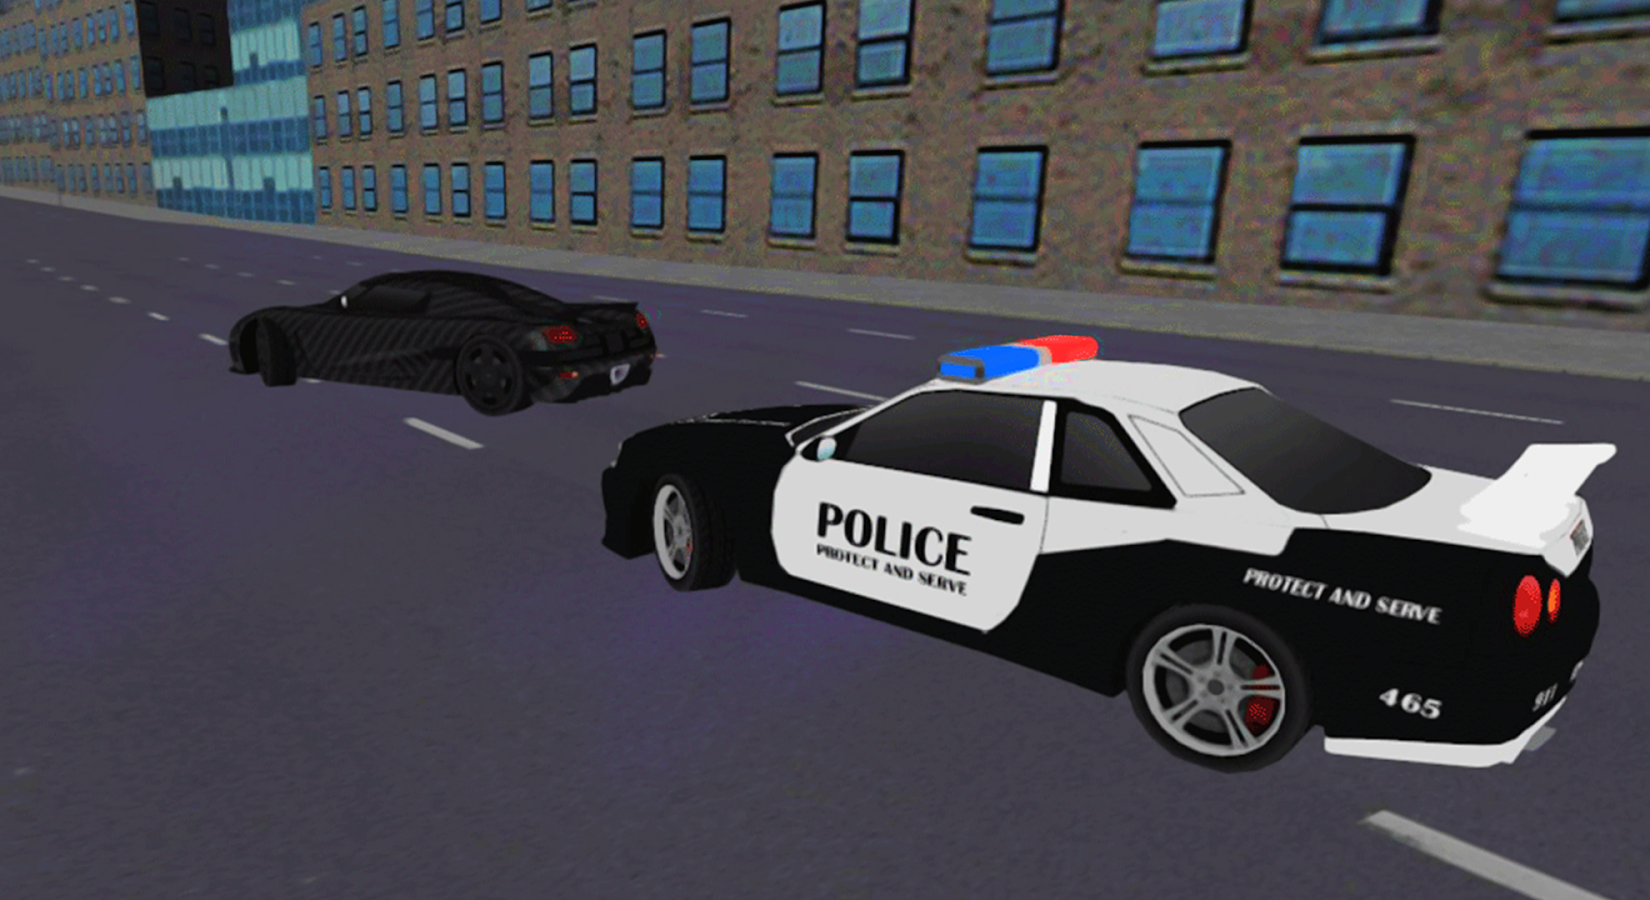 Police Vs Robbers 2- screenshot